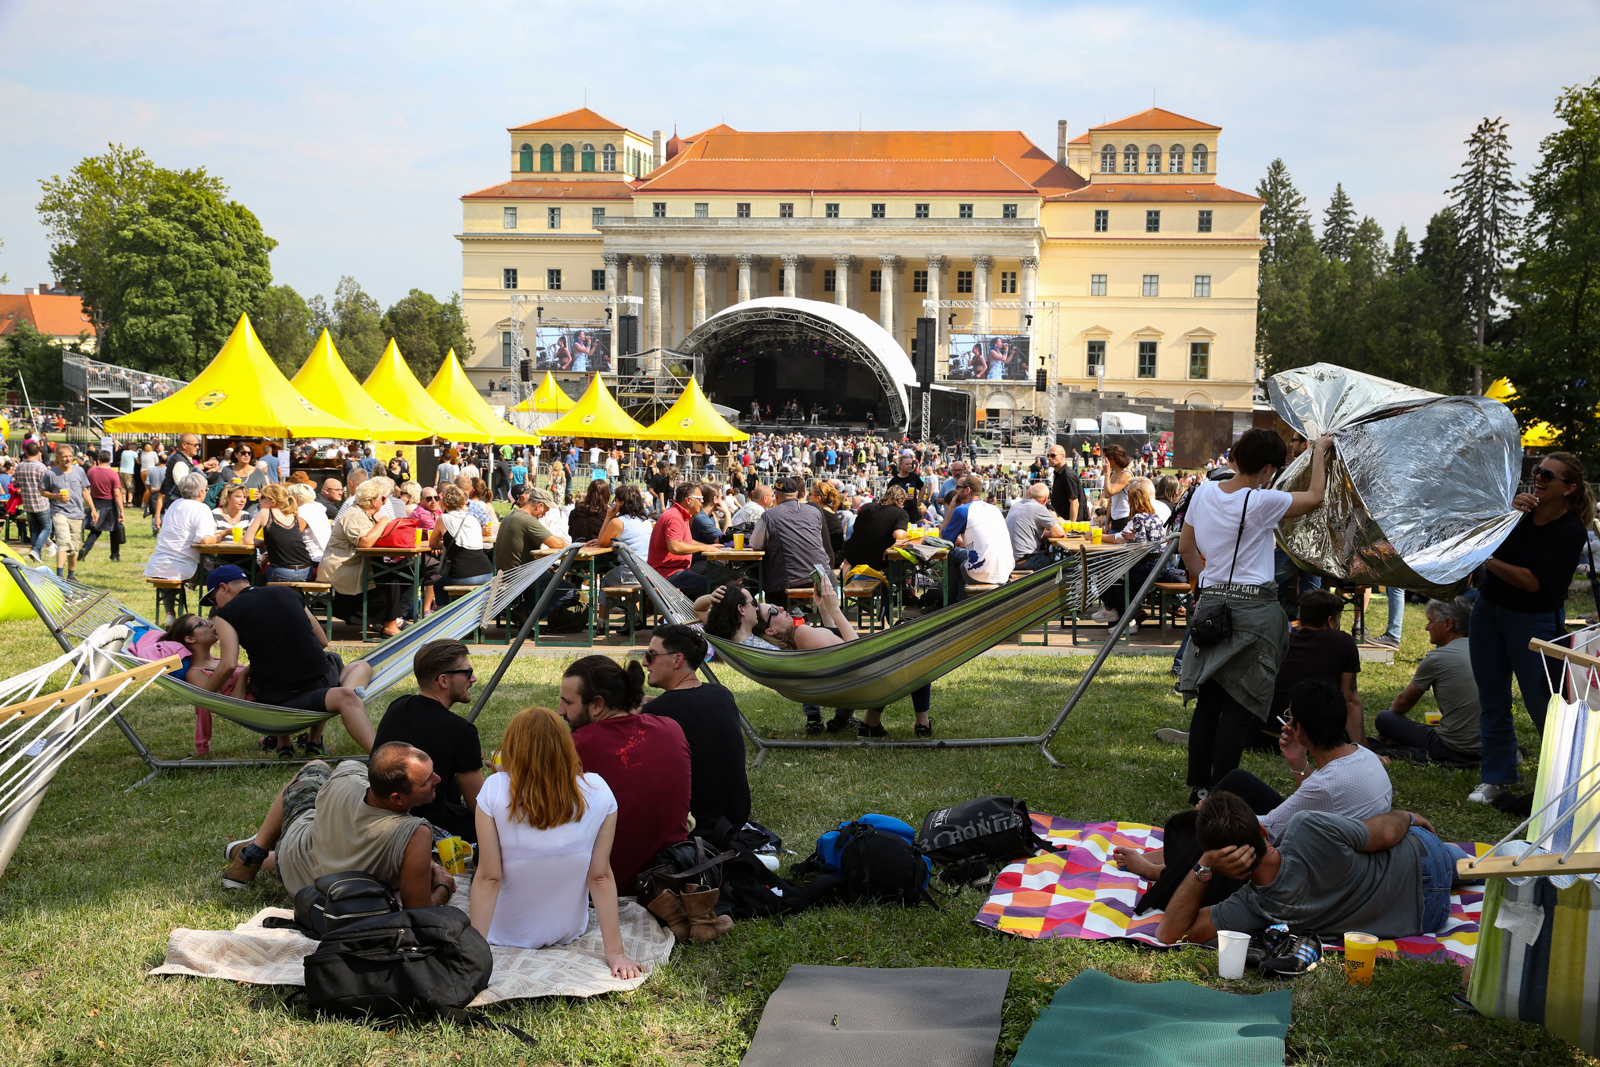 The Nova Jazz & Bluesnight @ Schloss Esterhazy